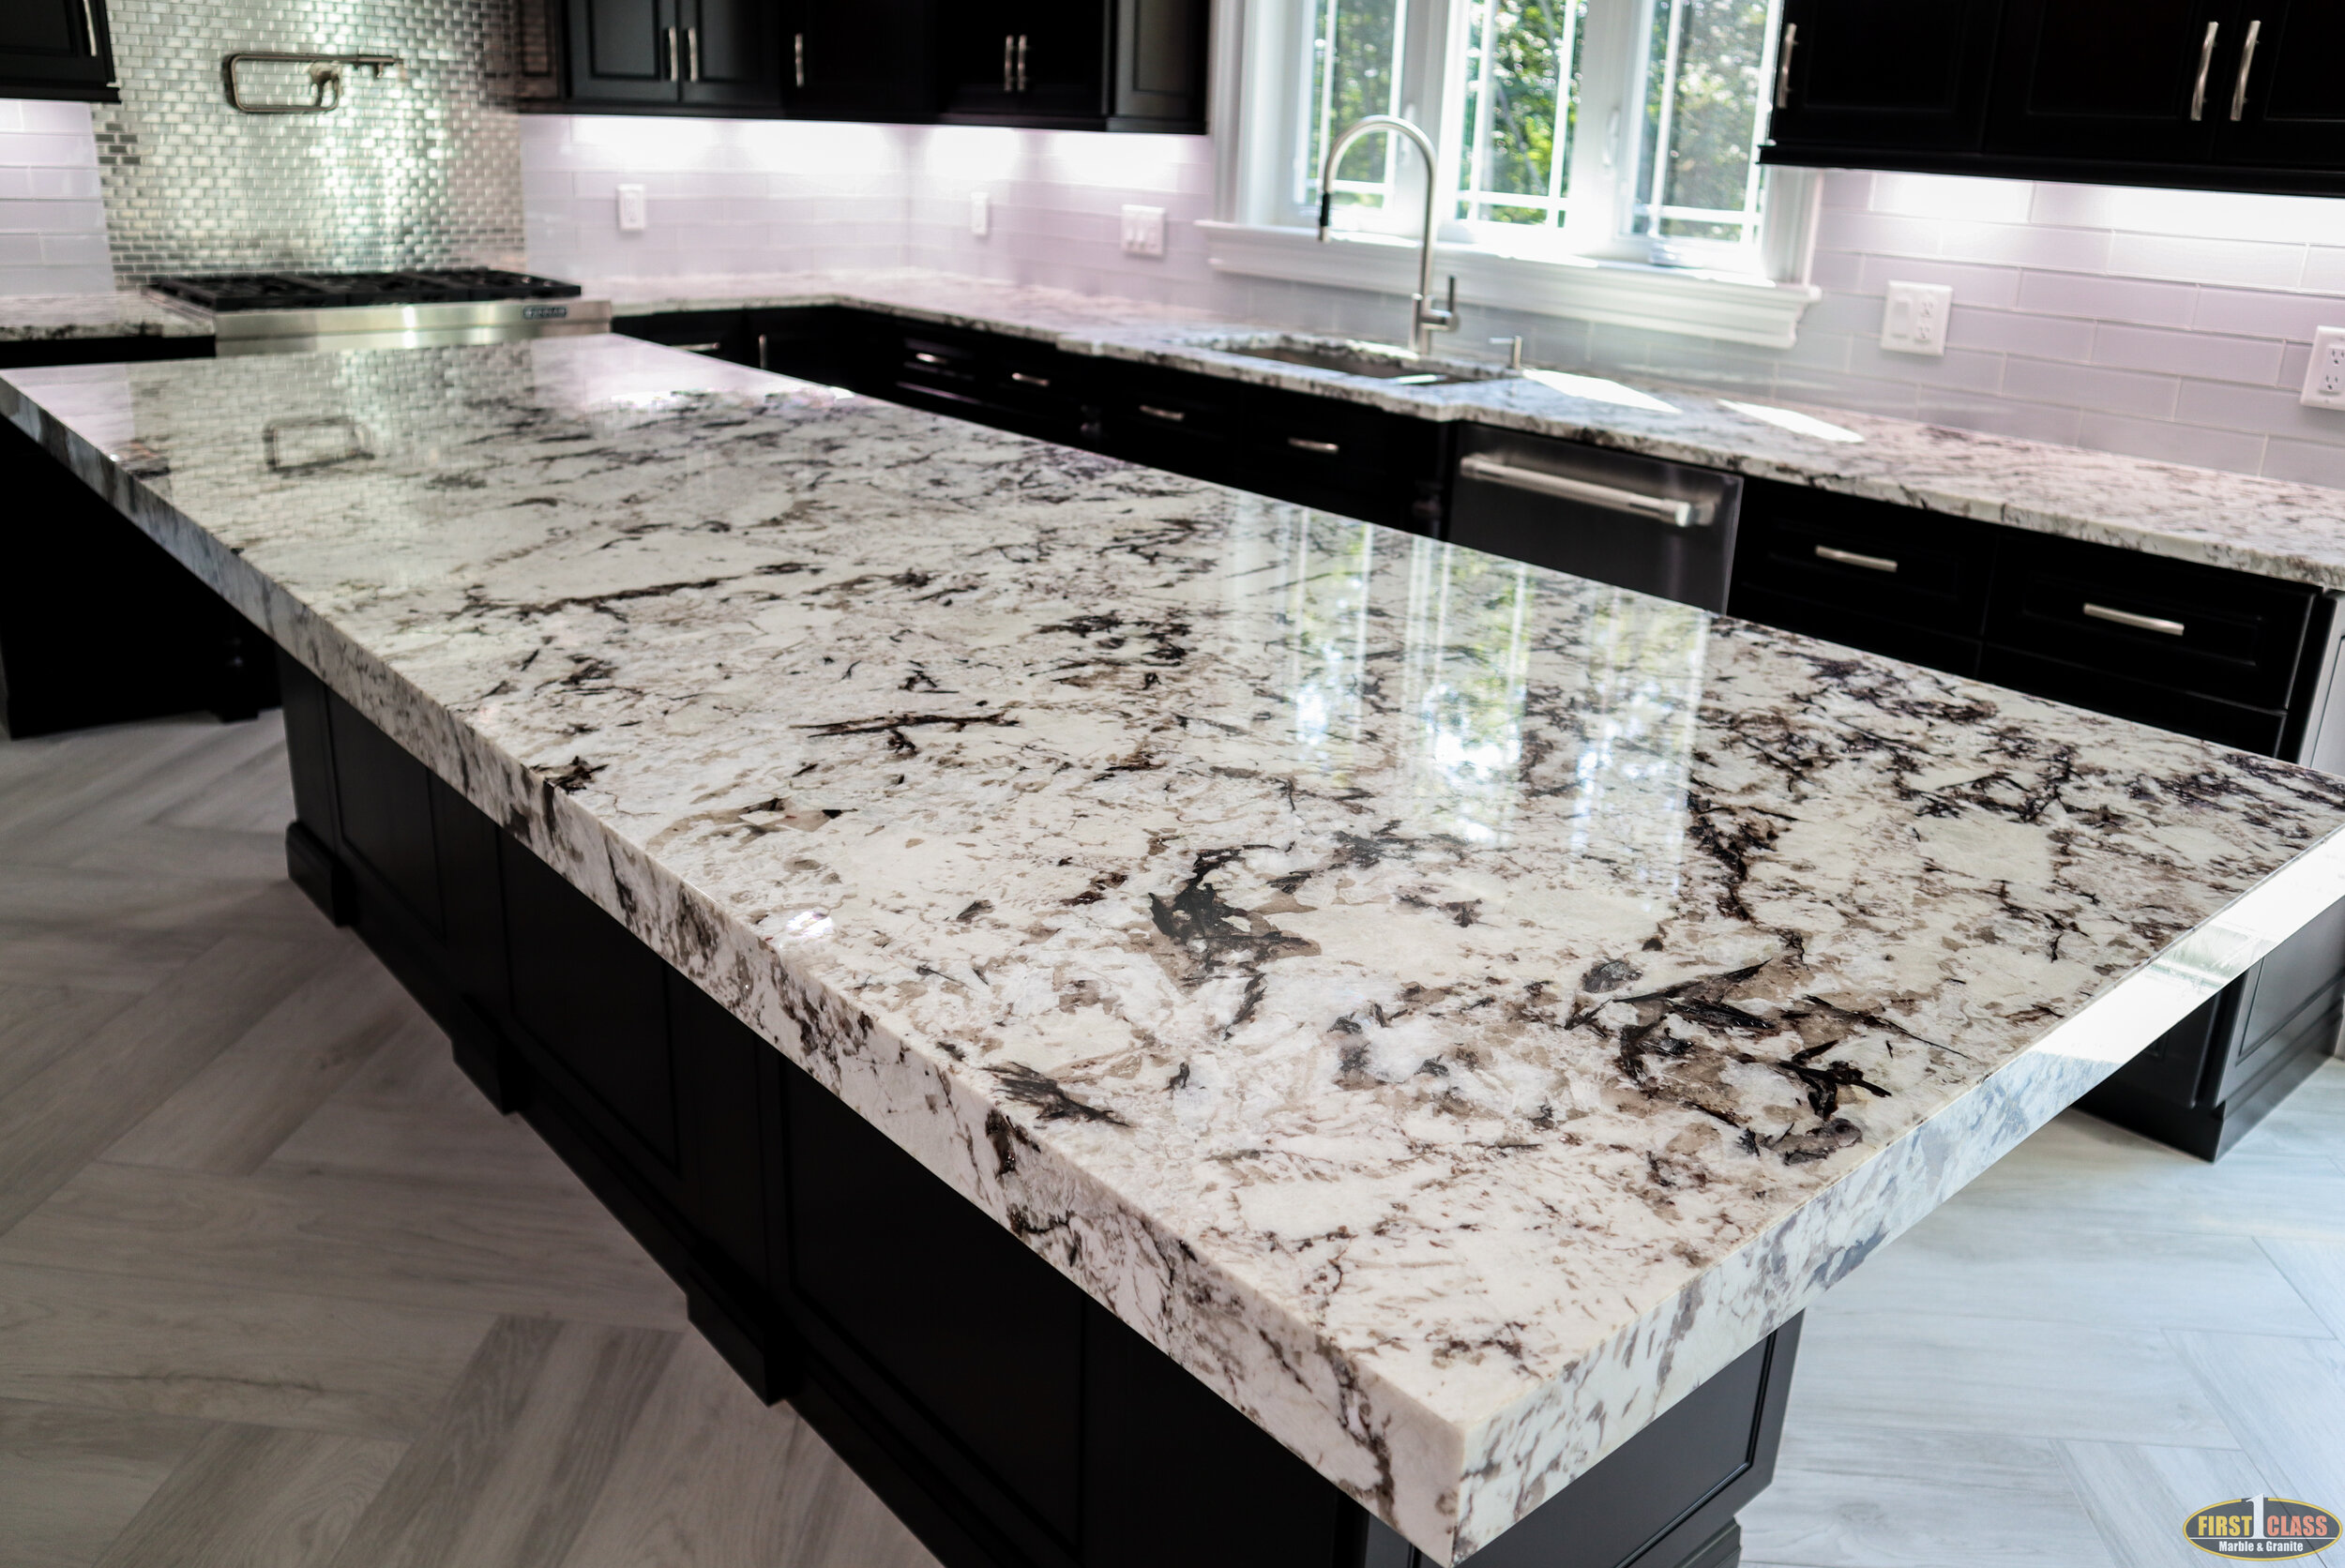 "Material: Cold Spring  Thickness, Finish & Stone Type: 3CM Polished Granite  Edge:  Main Counters: Eased Island: 2 1/2"" Mitered  Sink: KH16-300"